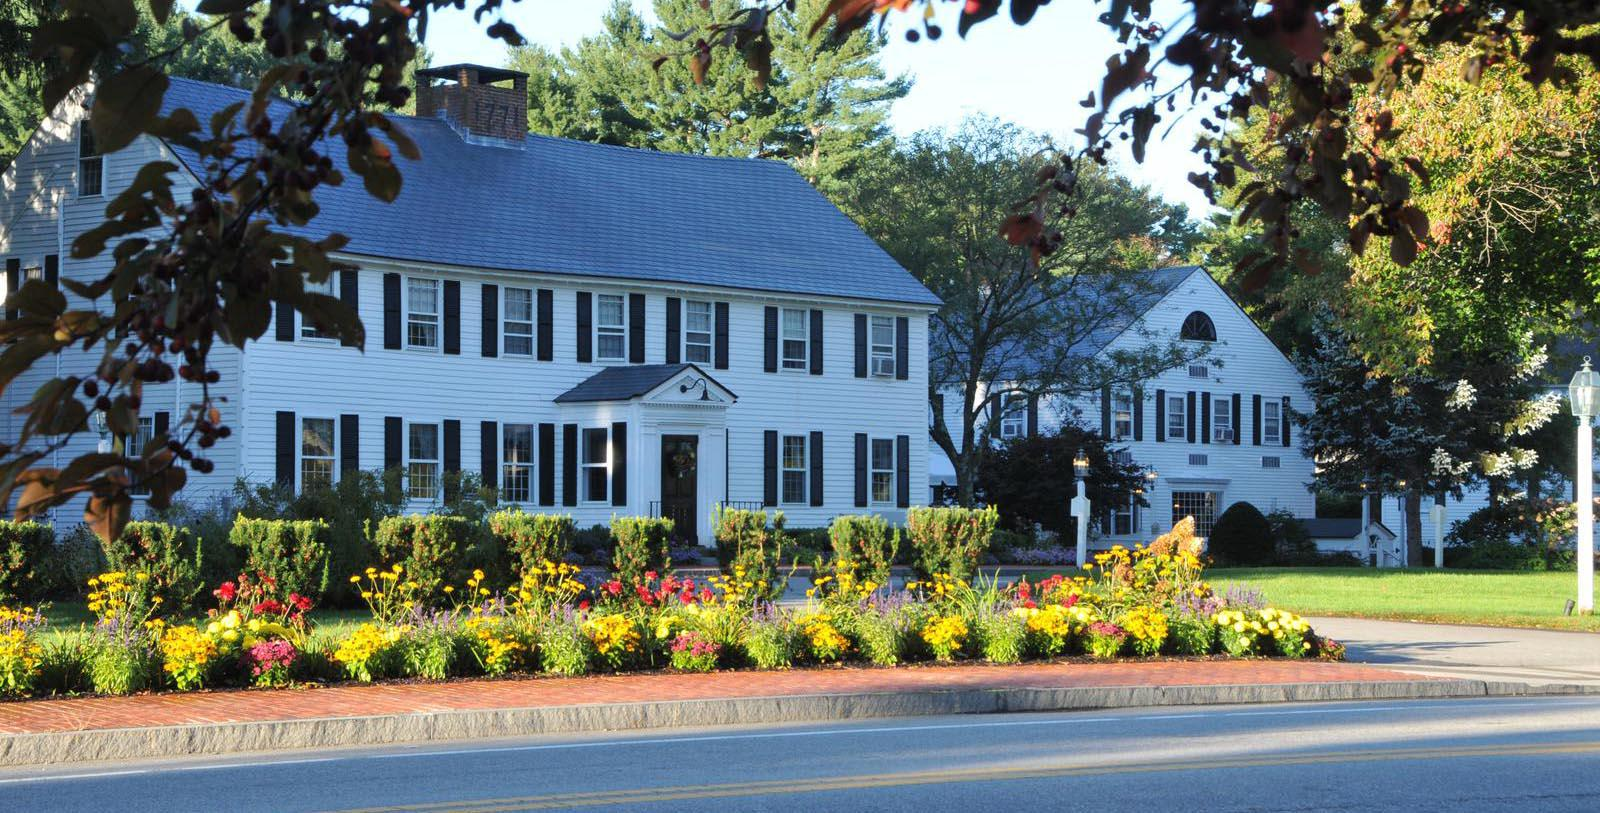 Image of Exterior of Publick House Historic Inn, 1771, Member of Historic Hotels of America, in Sturbridge, Massachusetts, Special Offers, Discounted Rates, Families, Romantic Escape, Honeymoons, Anniversaries, Reunions